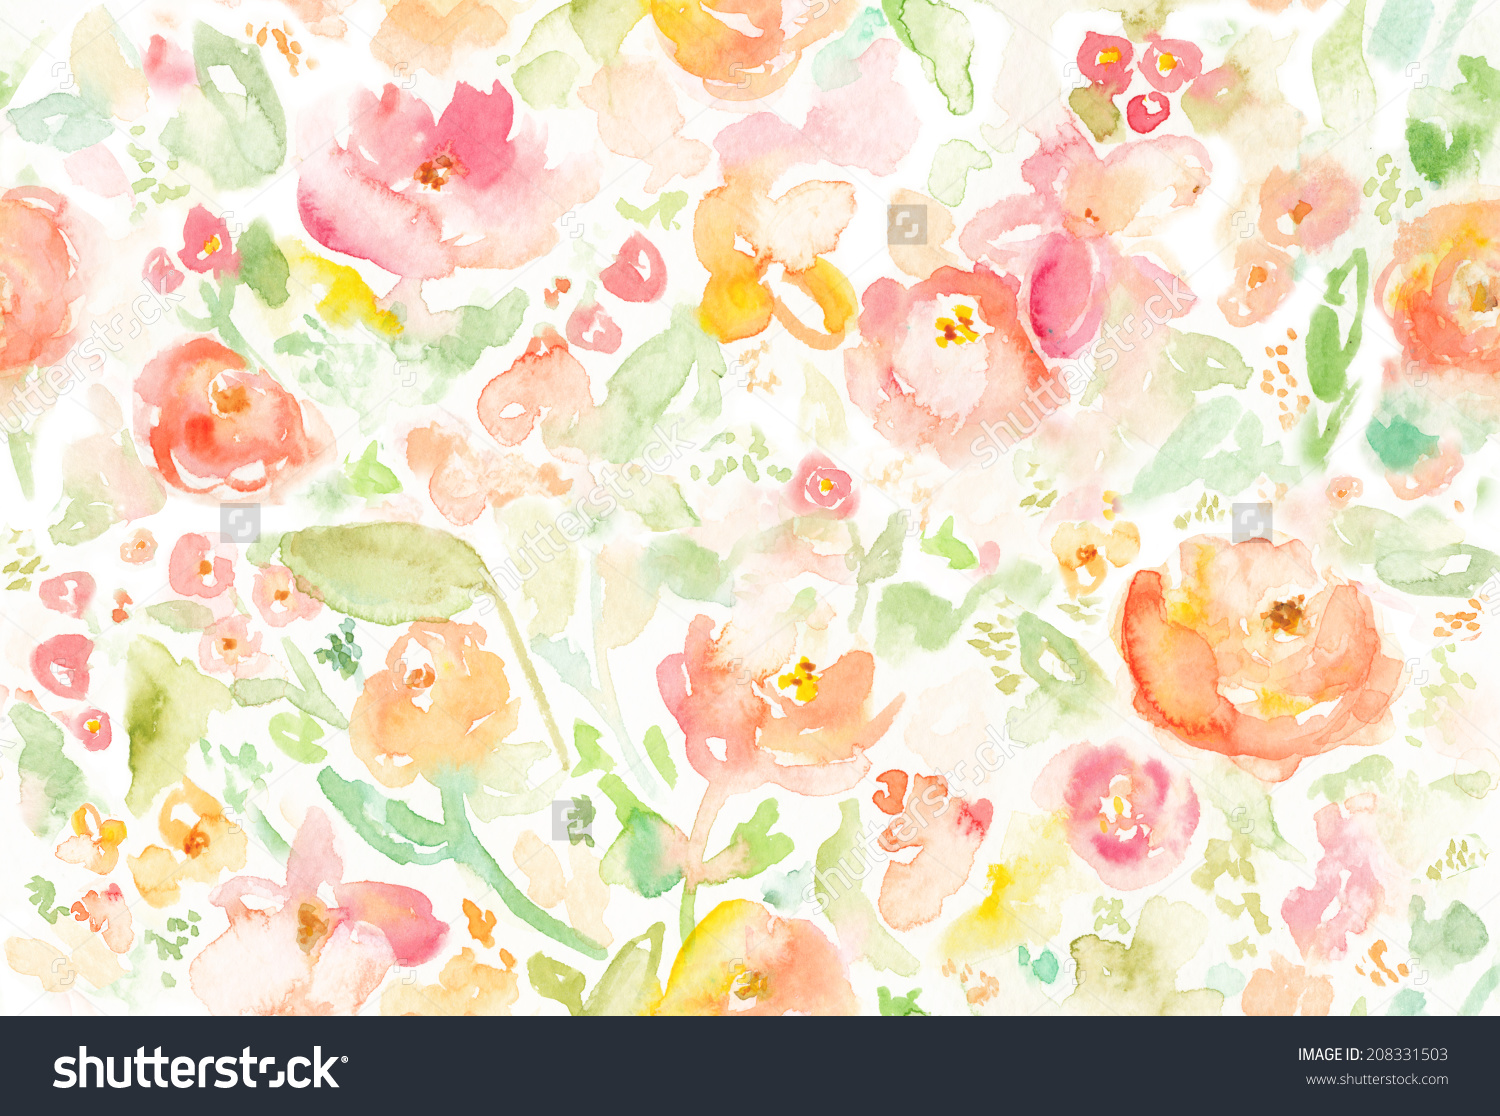 Free Download Watercolor Floral Background Colorful Watercolor